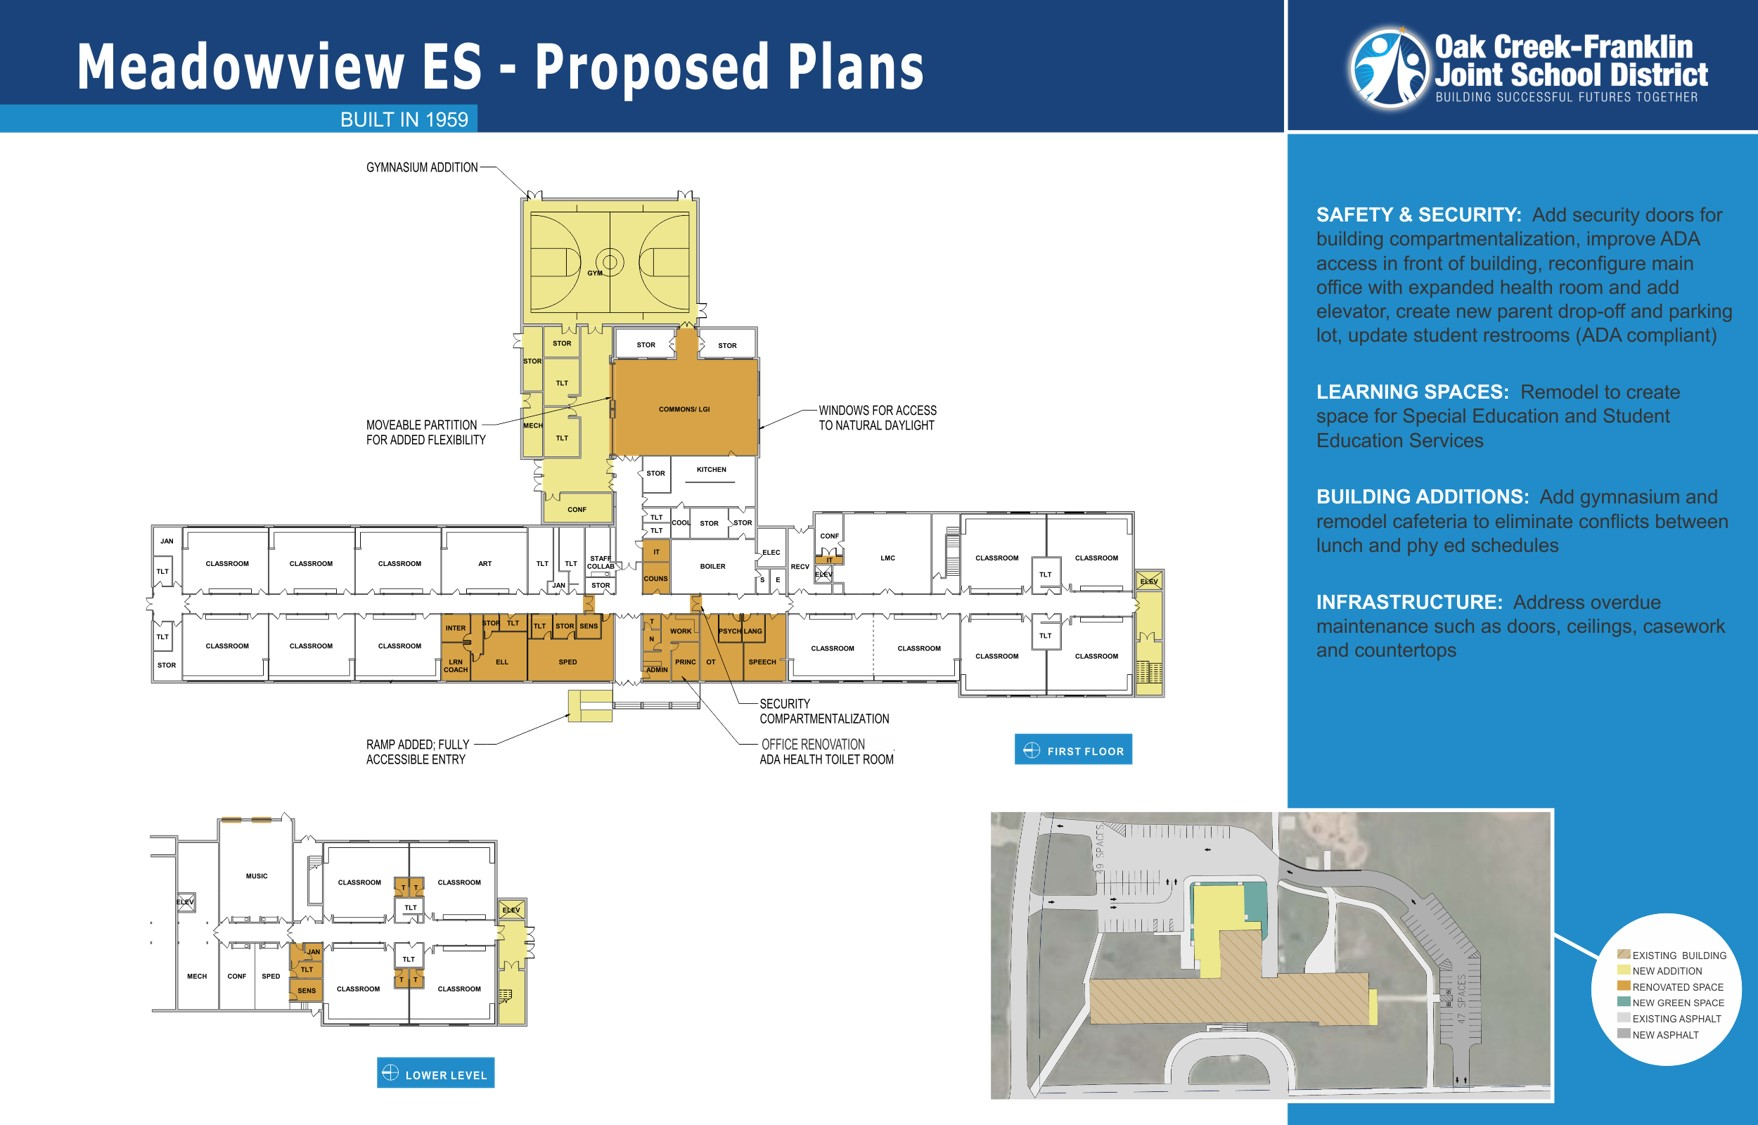 Meadowview Elementary proposed plans for 2018 referendum